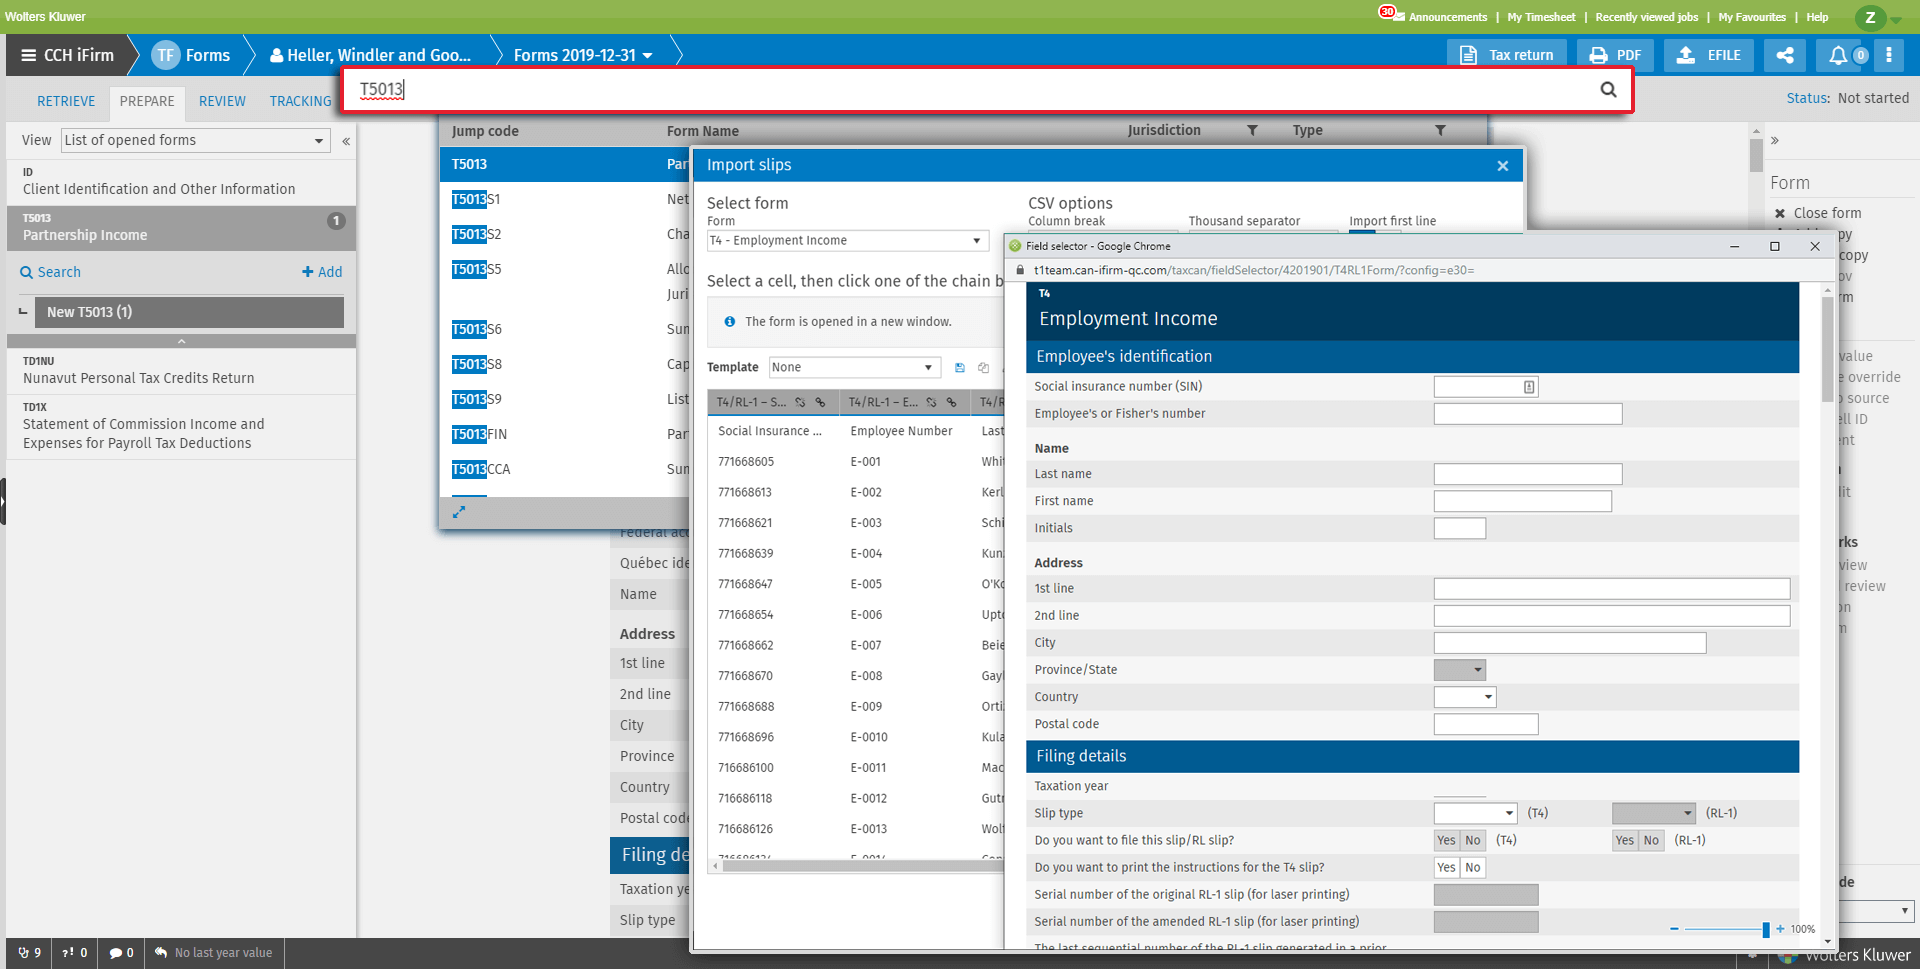 CCH iFirm Cantax Forms screenshot